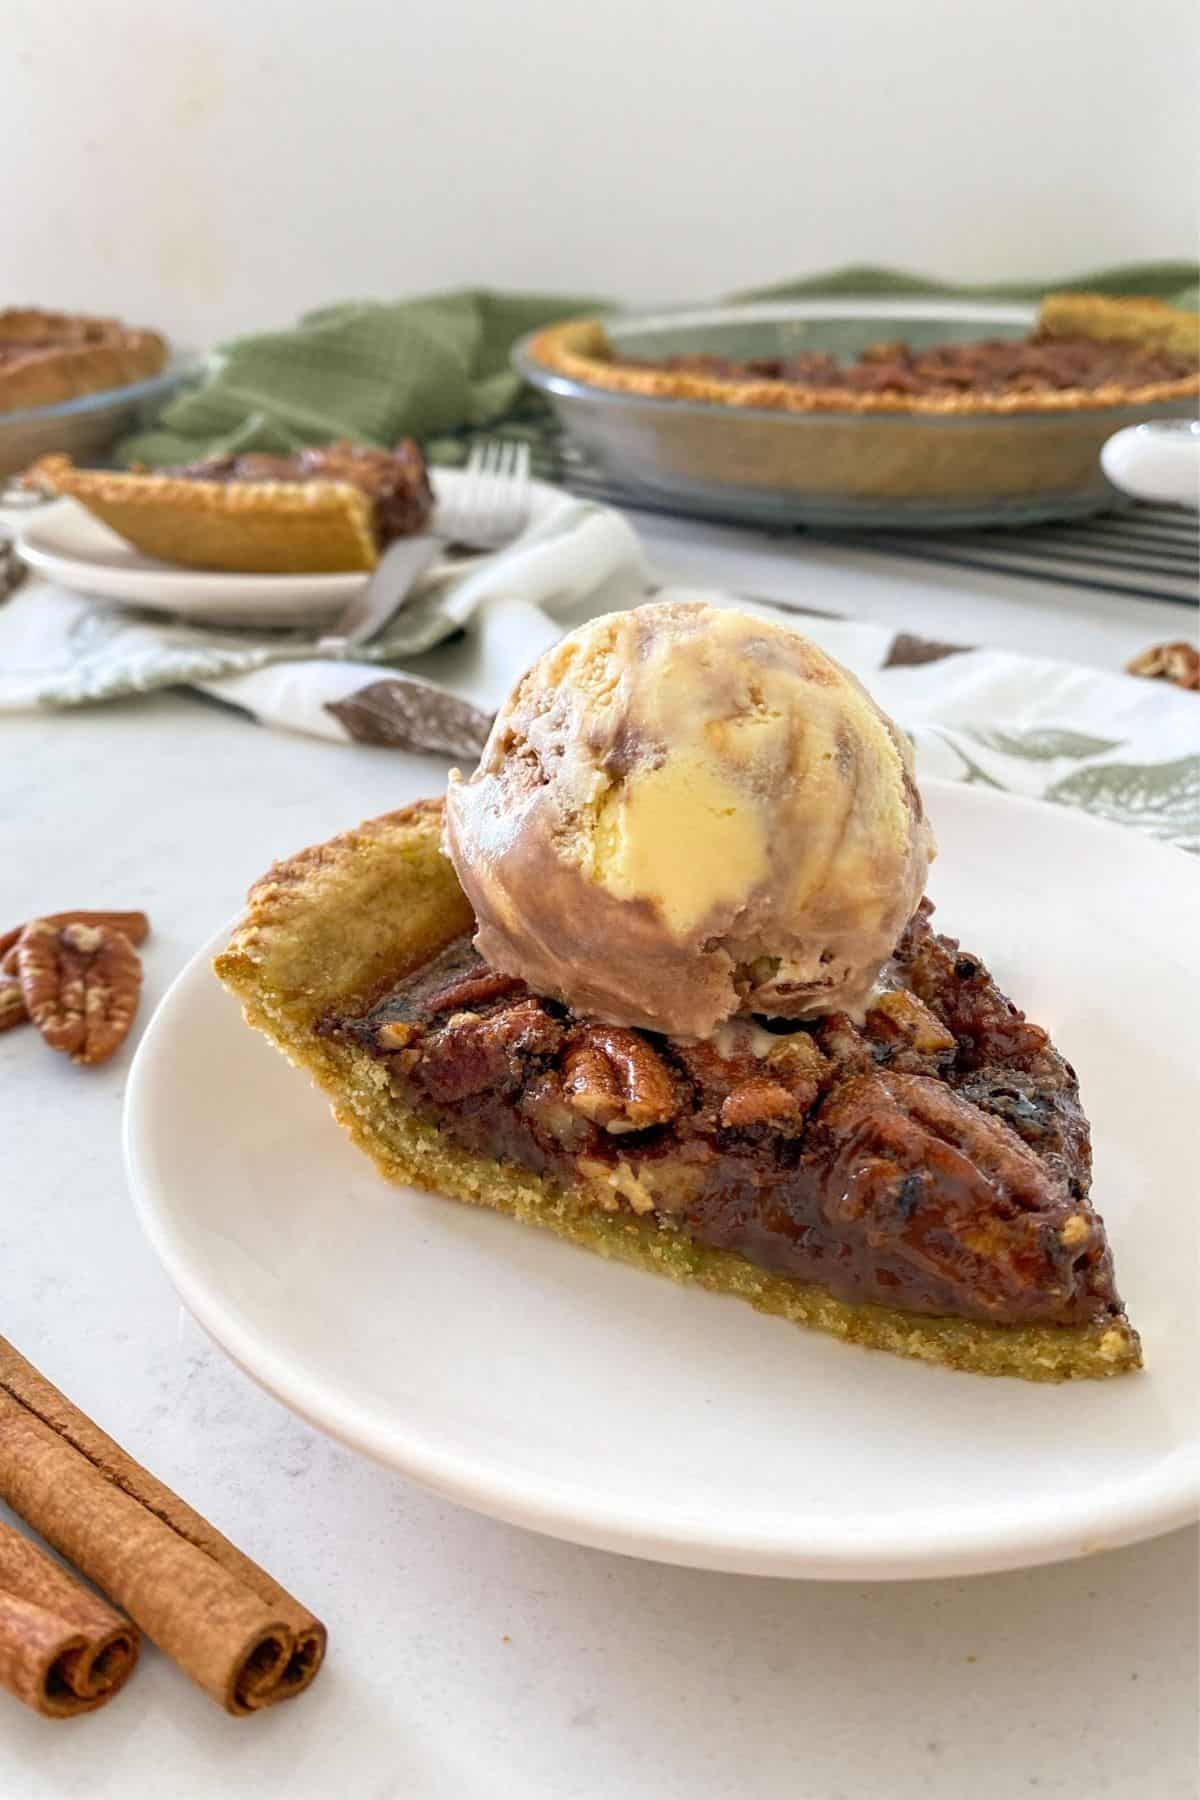 Slice of pecan pie on plate with scoop of ice cream on top.